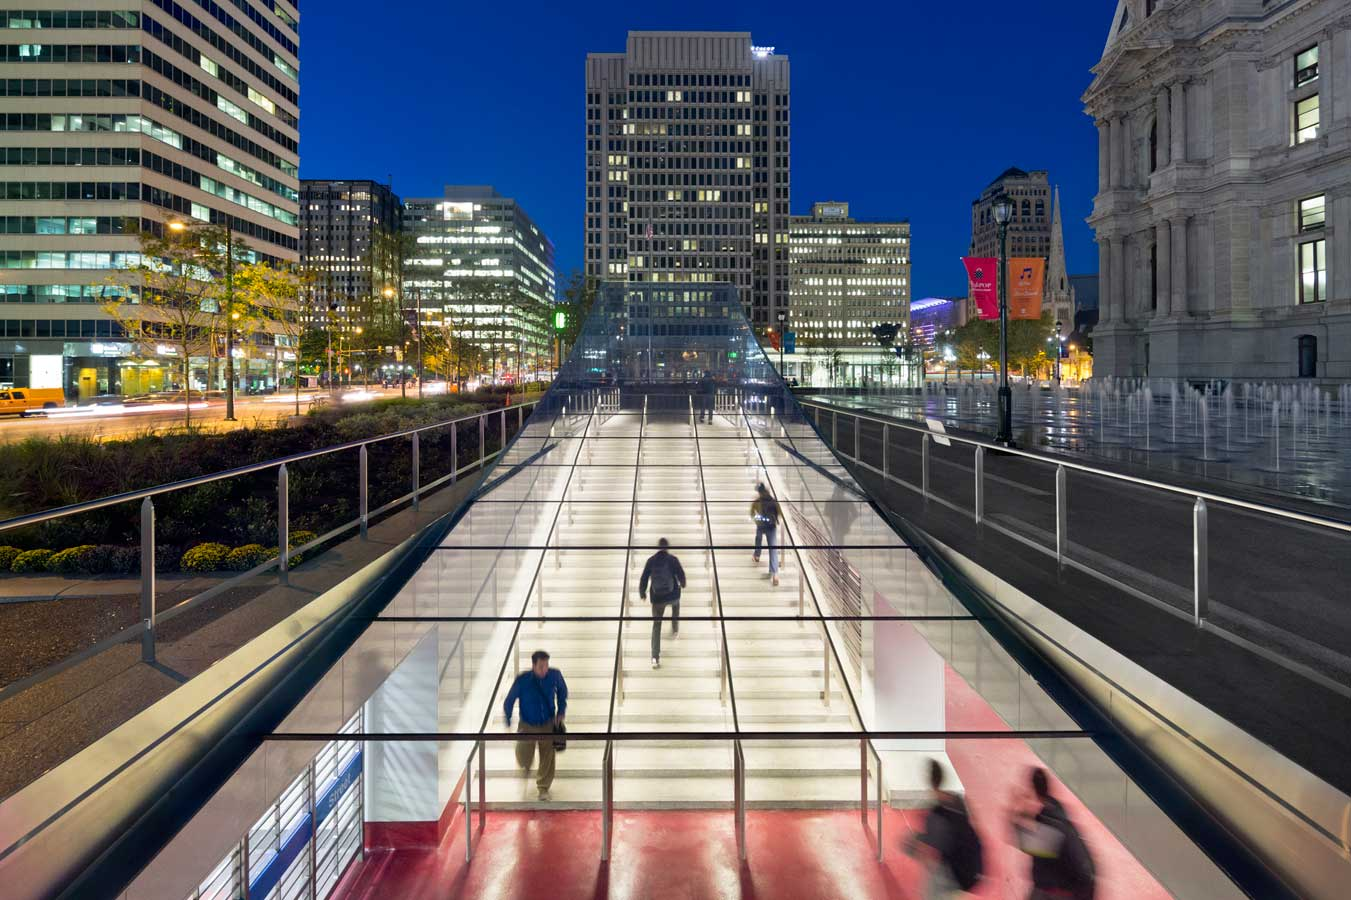 <p>Improved light quality in the concourse, combined with illuminated access points and a new way-finding system all contribute to safer and clearer passage. <br><small>&copy; James Ewing Photography</small></p>